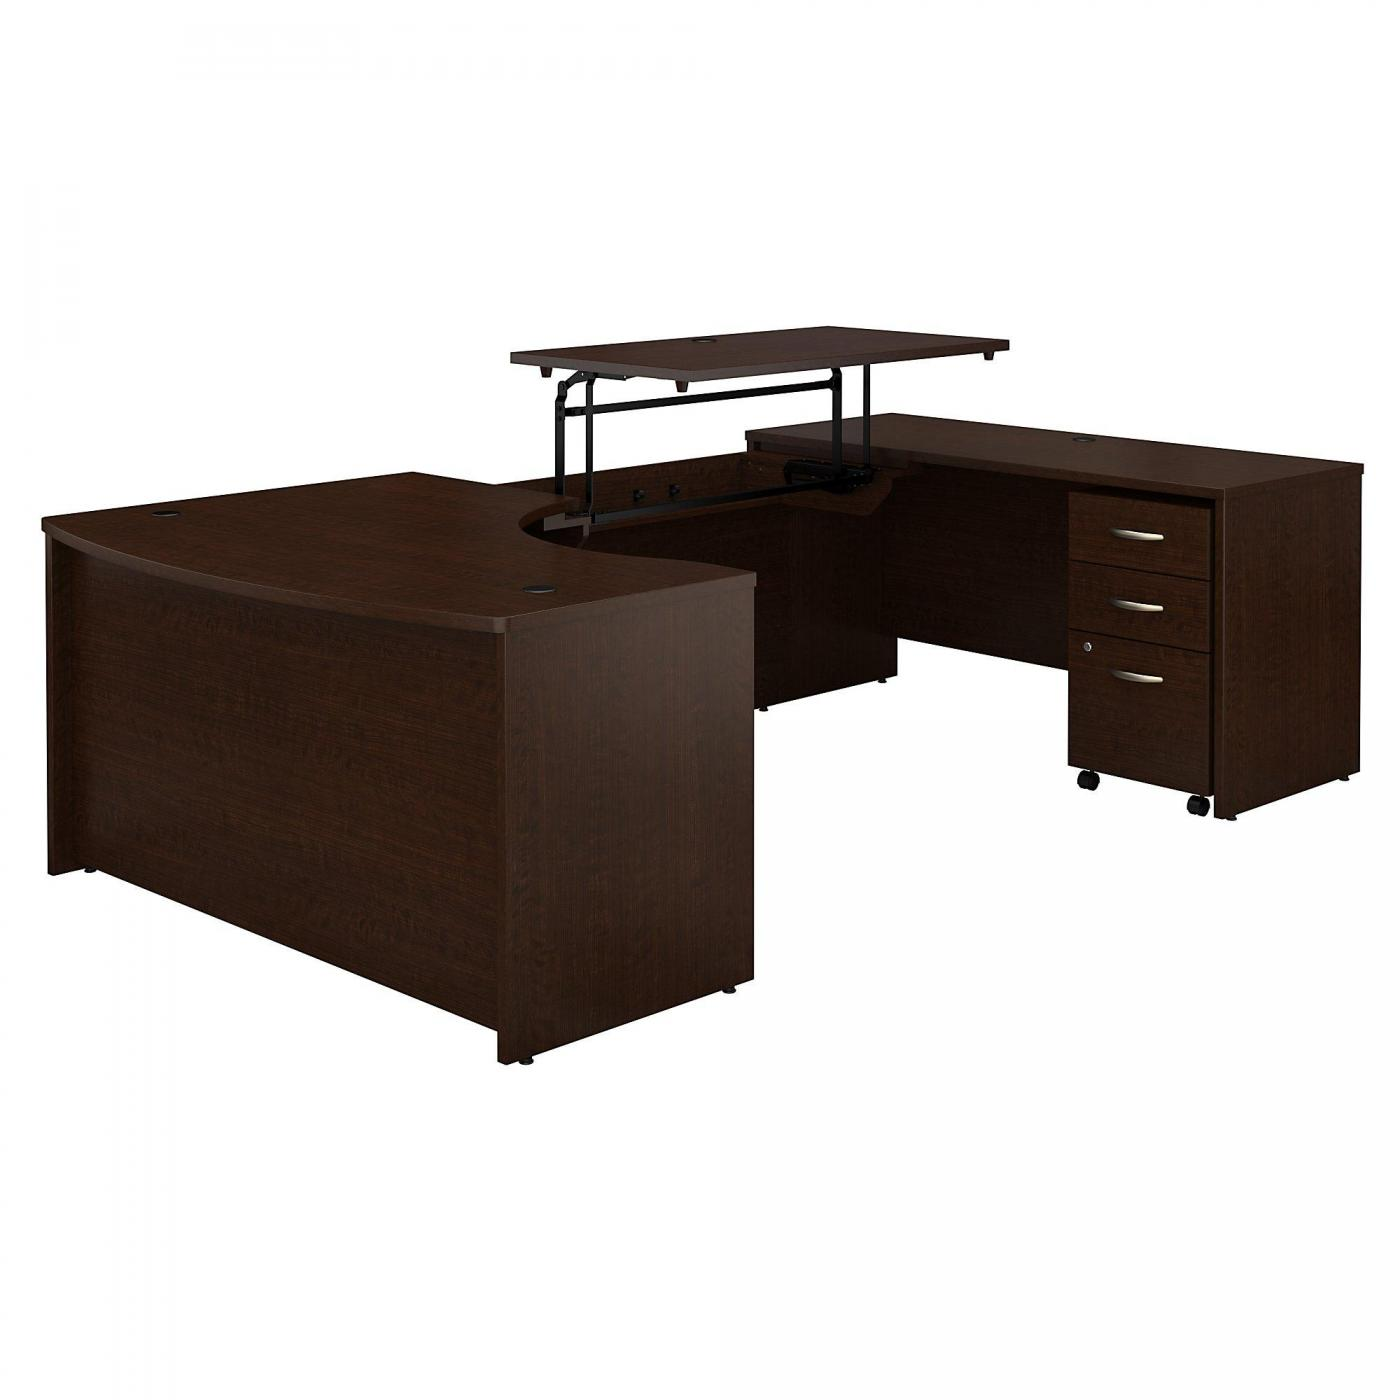 <font color=#c60><b>BUSH BUSINESS FURNITURE SERIES C 60W X 43D LEFT HAND 3 POSITION SIT TO STAND U SHAPED DESK WITH MOBILE FILE CABINET. FREE SHIPPING. VIDEO:</font></b></font></b>